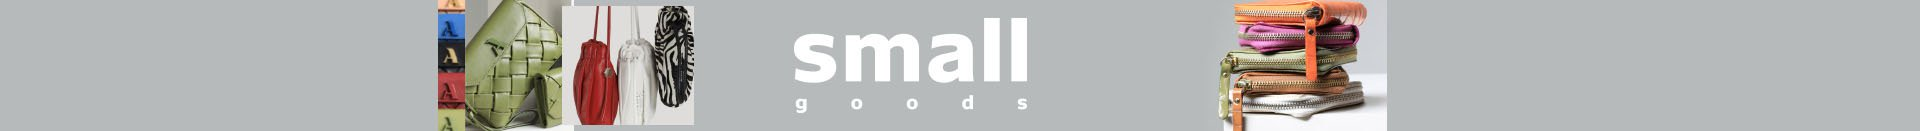 Banners-SmallGoods-categoria-desktop.jpg